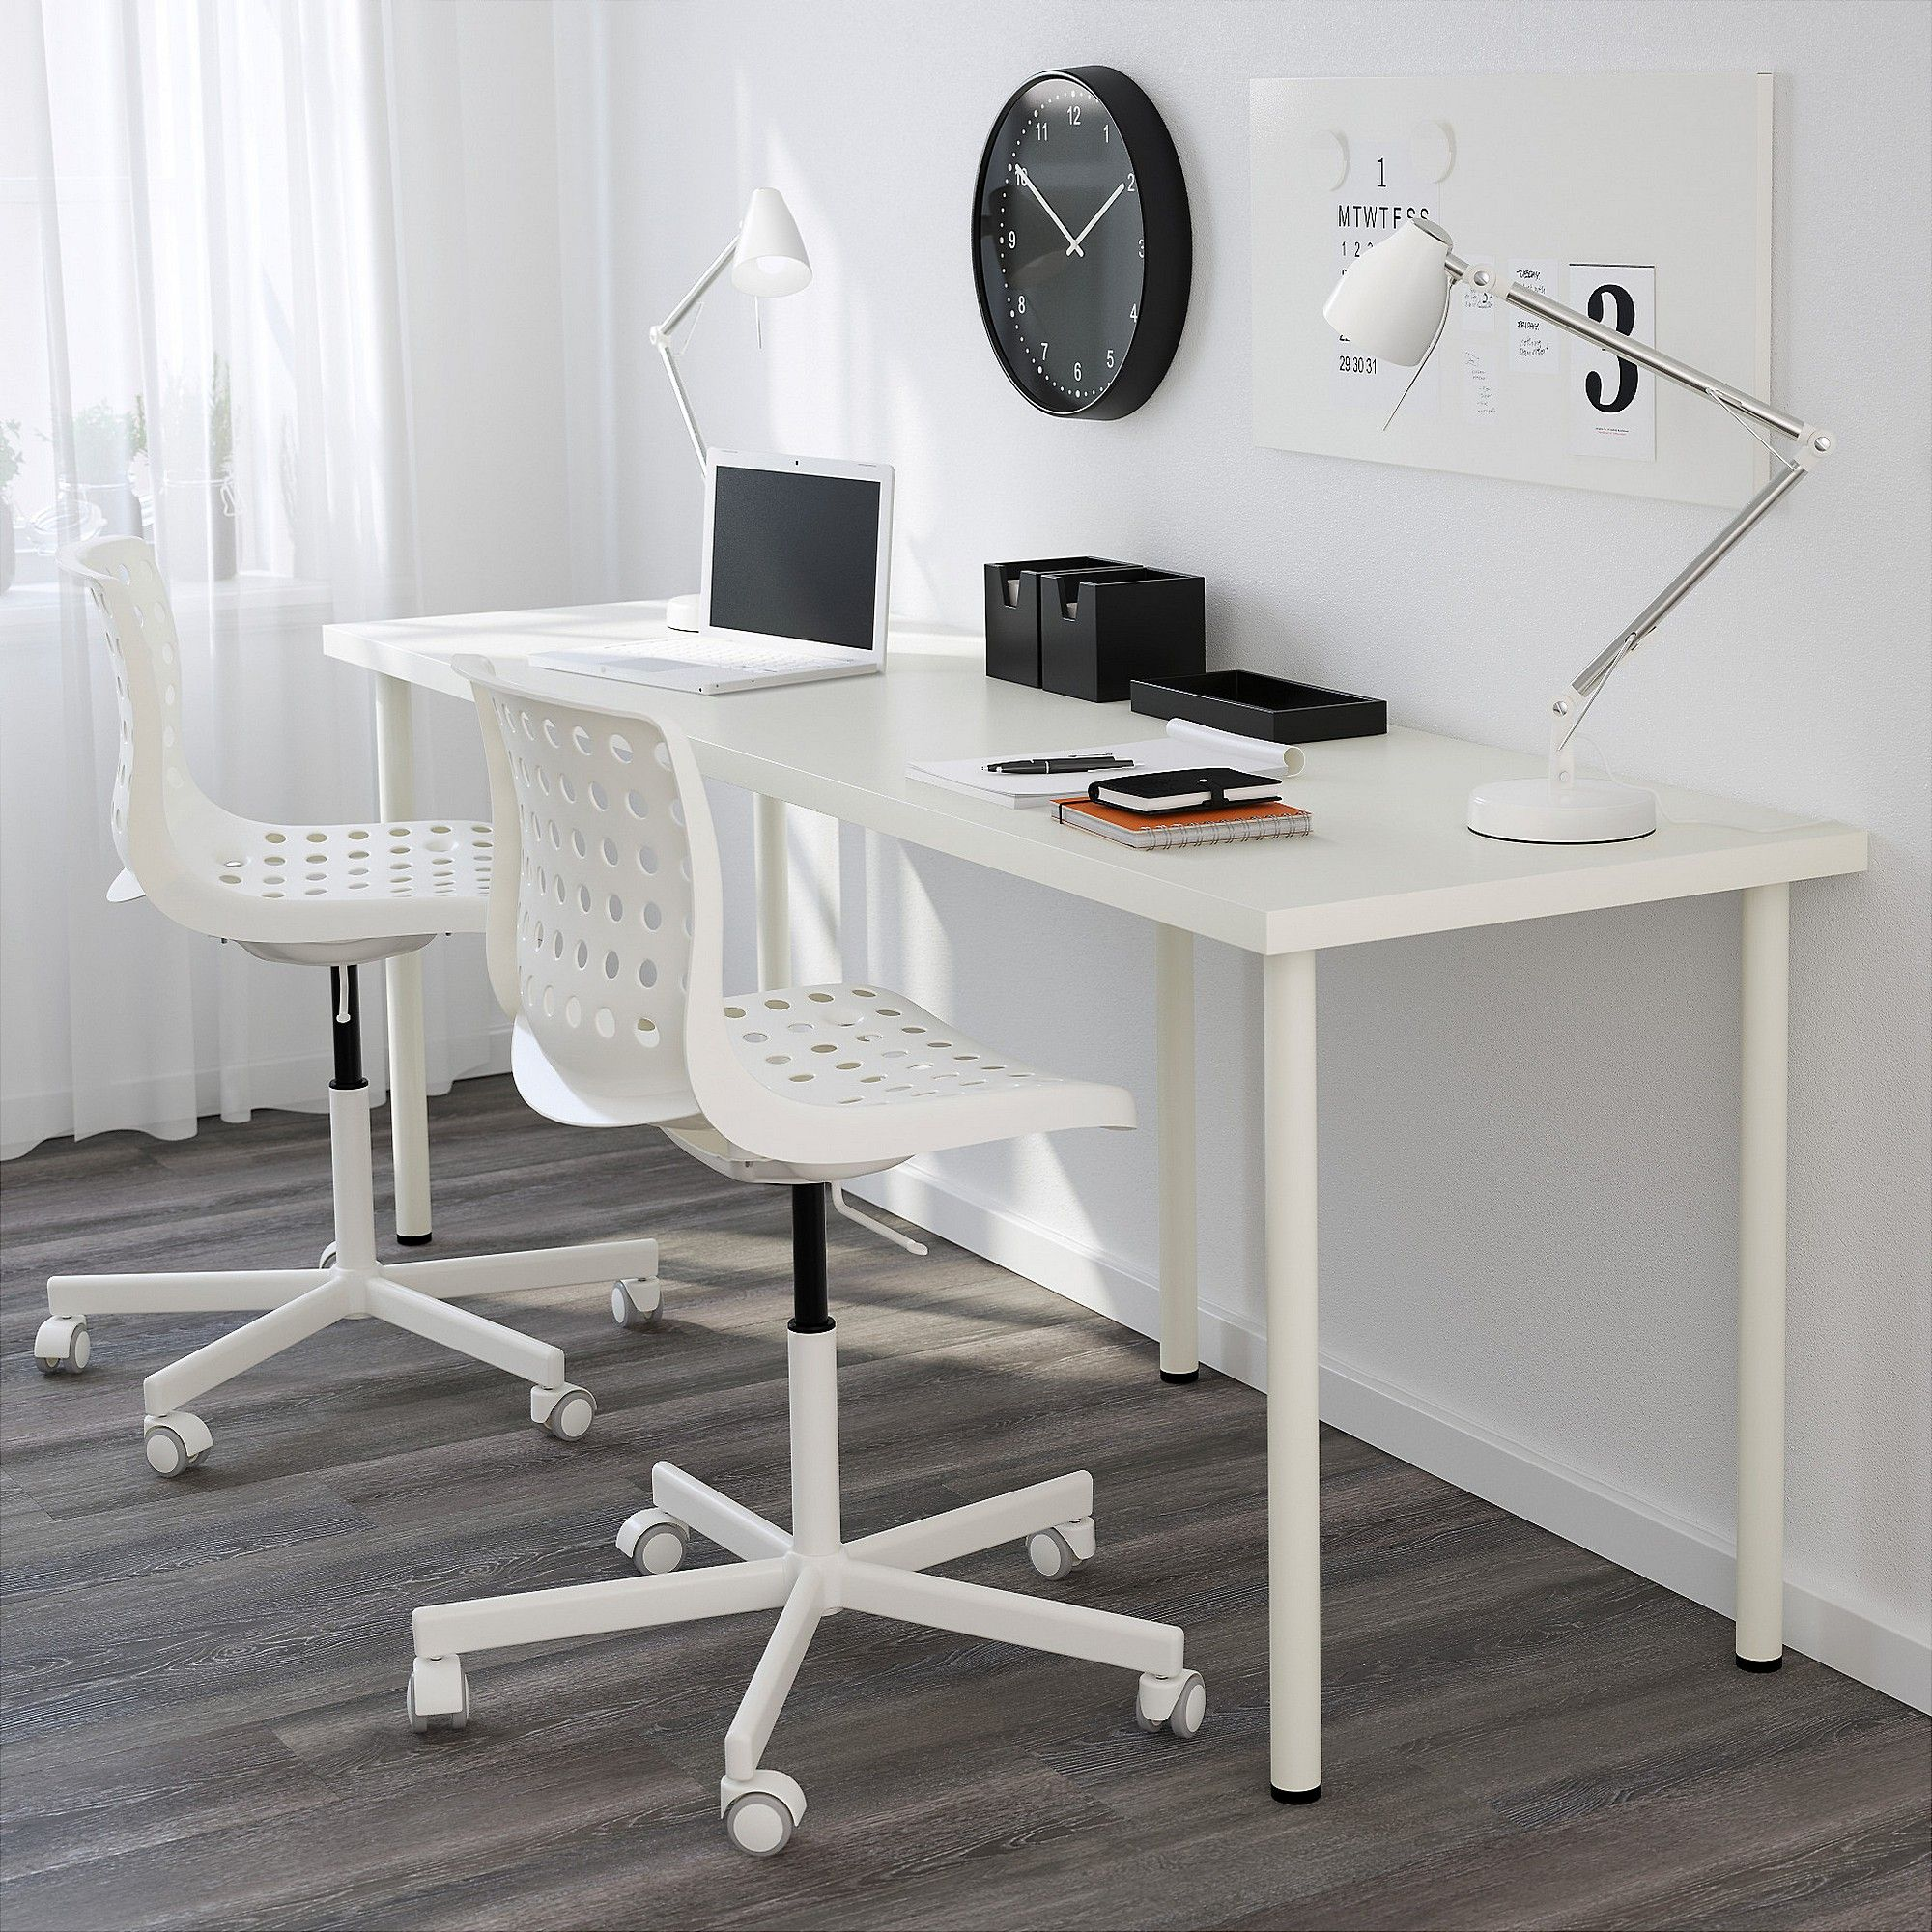 Ikea Linnmon Adils Which Allows You To Select The Perfect Table And Leg Pairing For Home Office Linnmon Table Top Home Office Furniture Best Home Office Desk